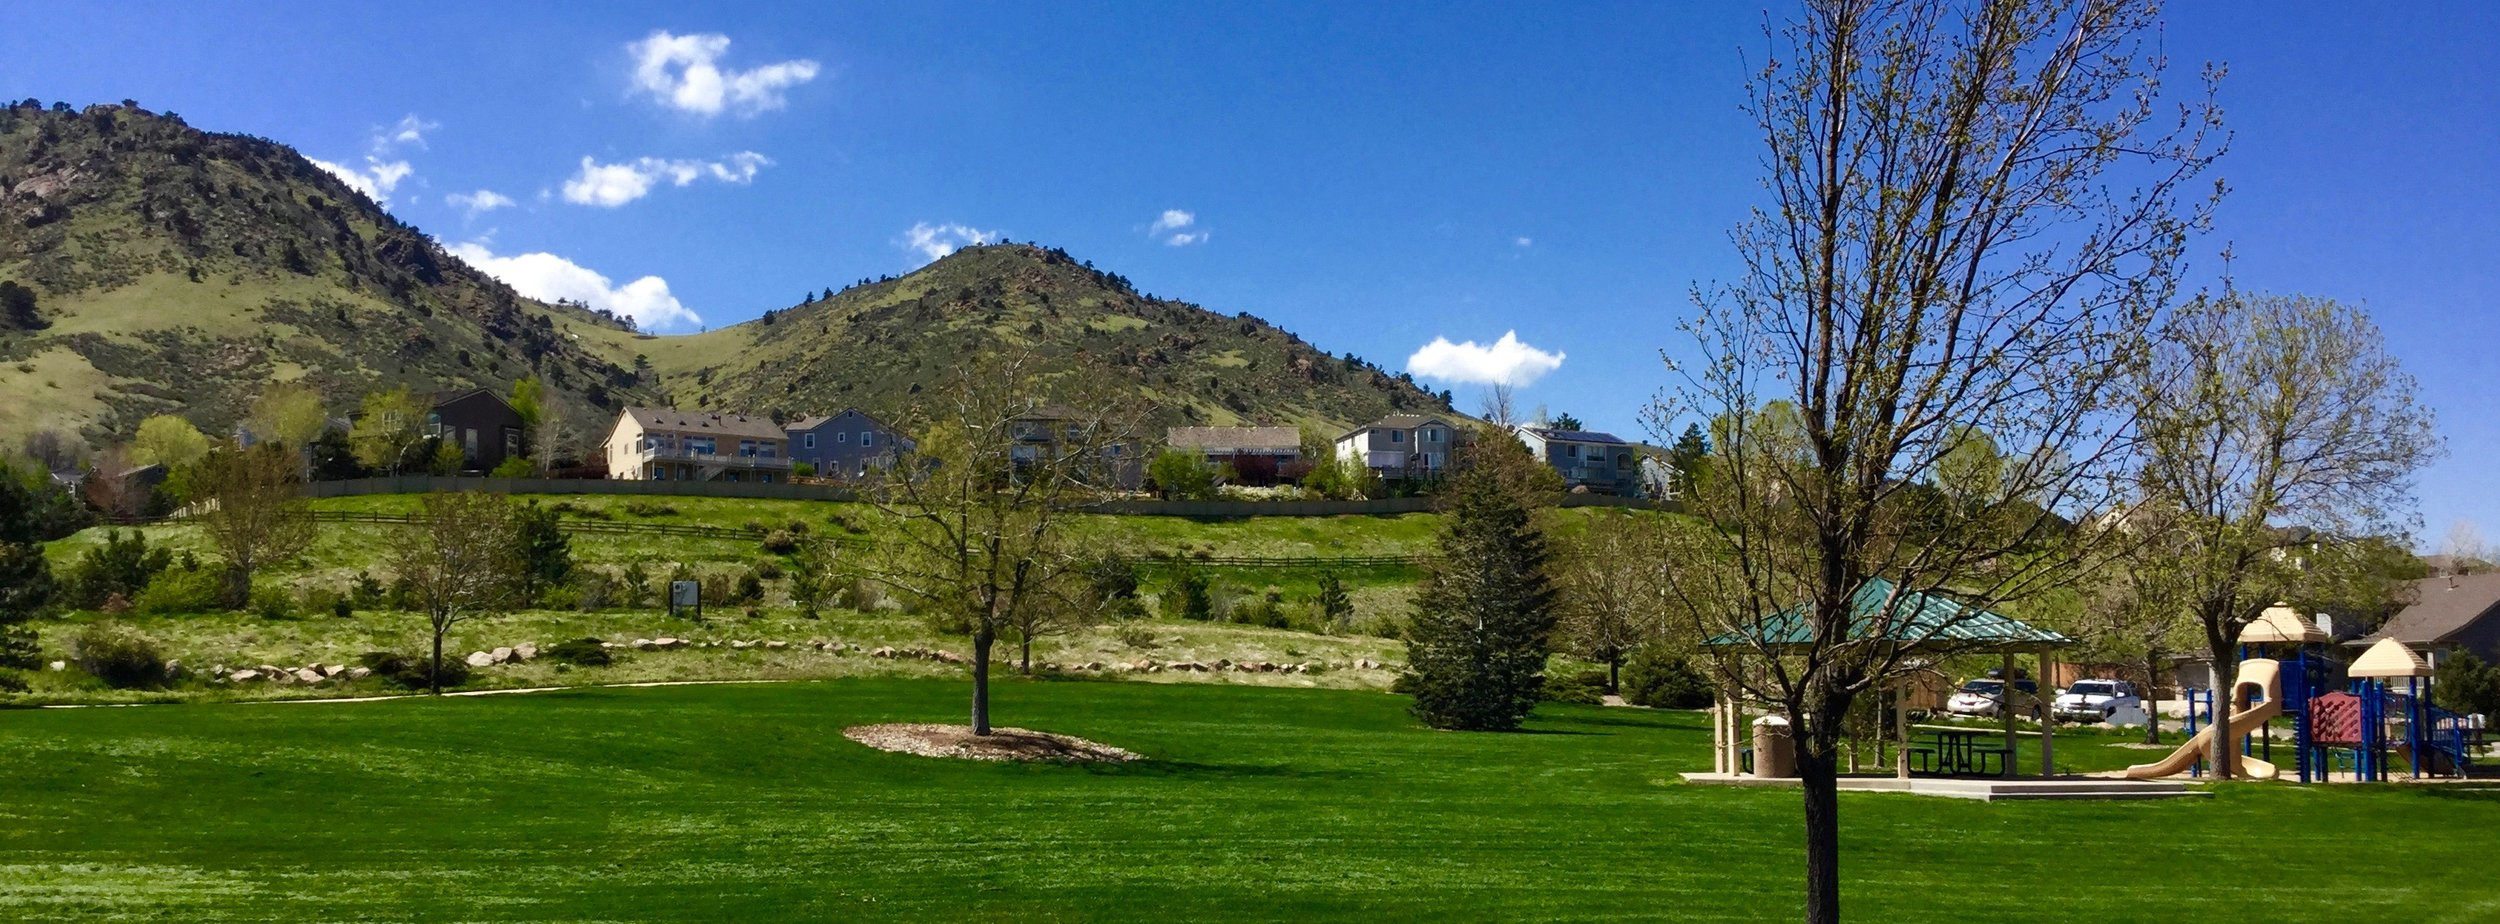 The New Loveland Mine Park is just footsteps to the west of Canyon View Court Townhomes in Golden, Colorado.